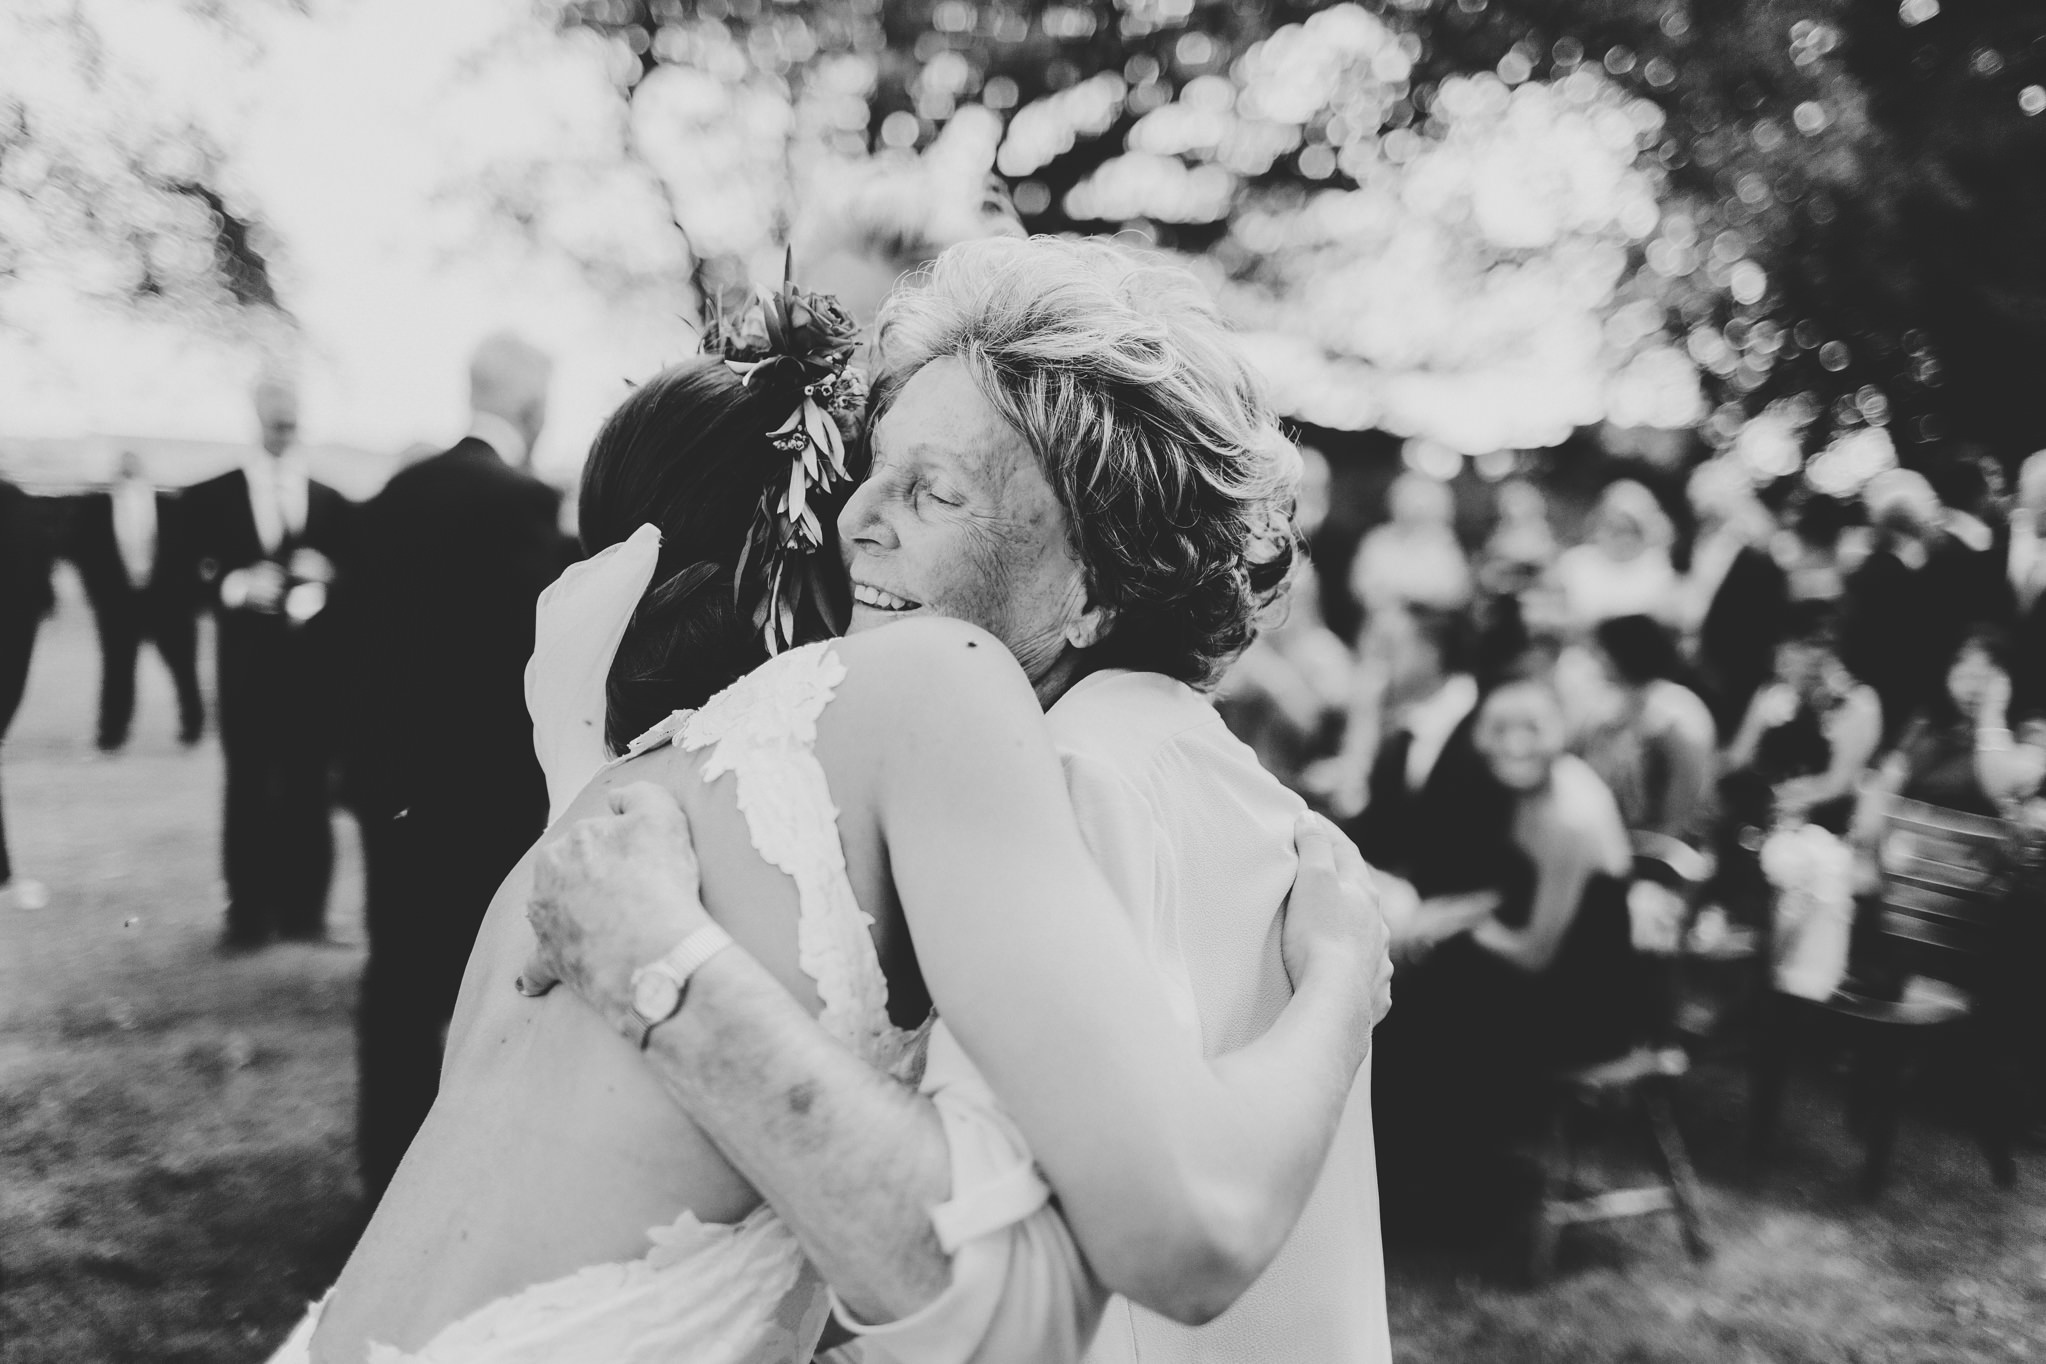 TocalHomestead_WeddingPhotography_LaurenAnnePhotography-1074.jpg